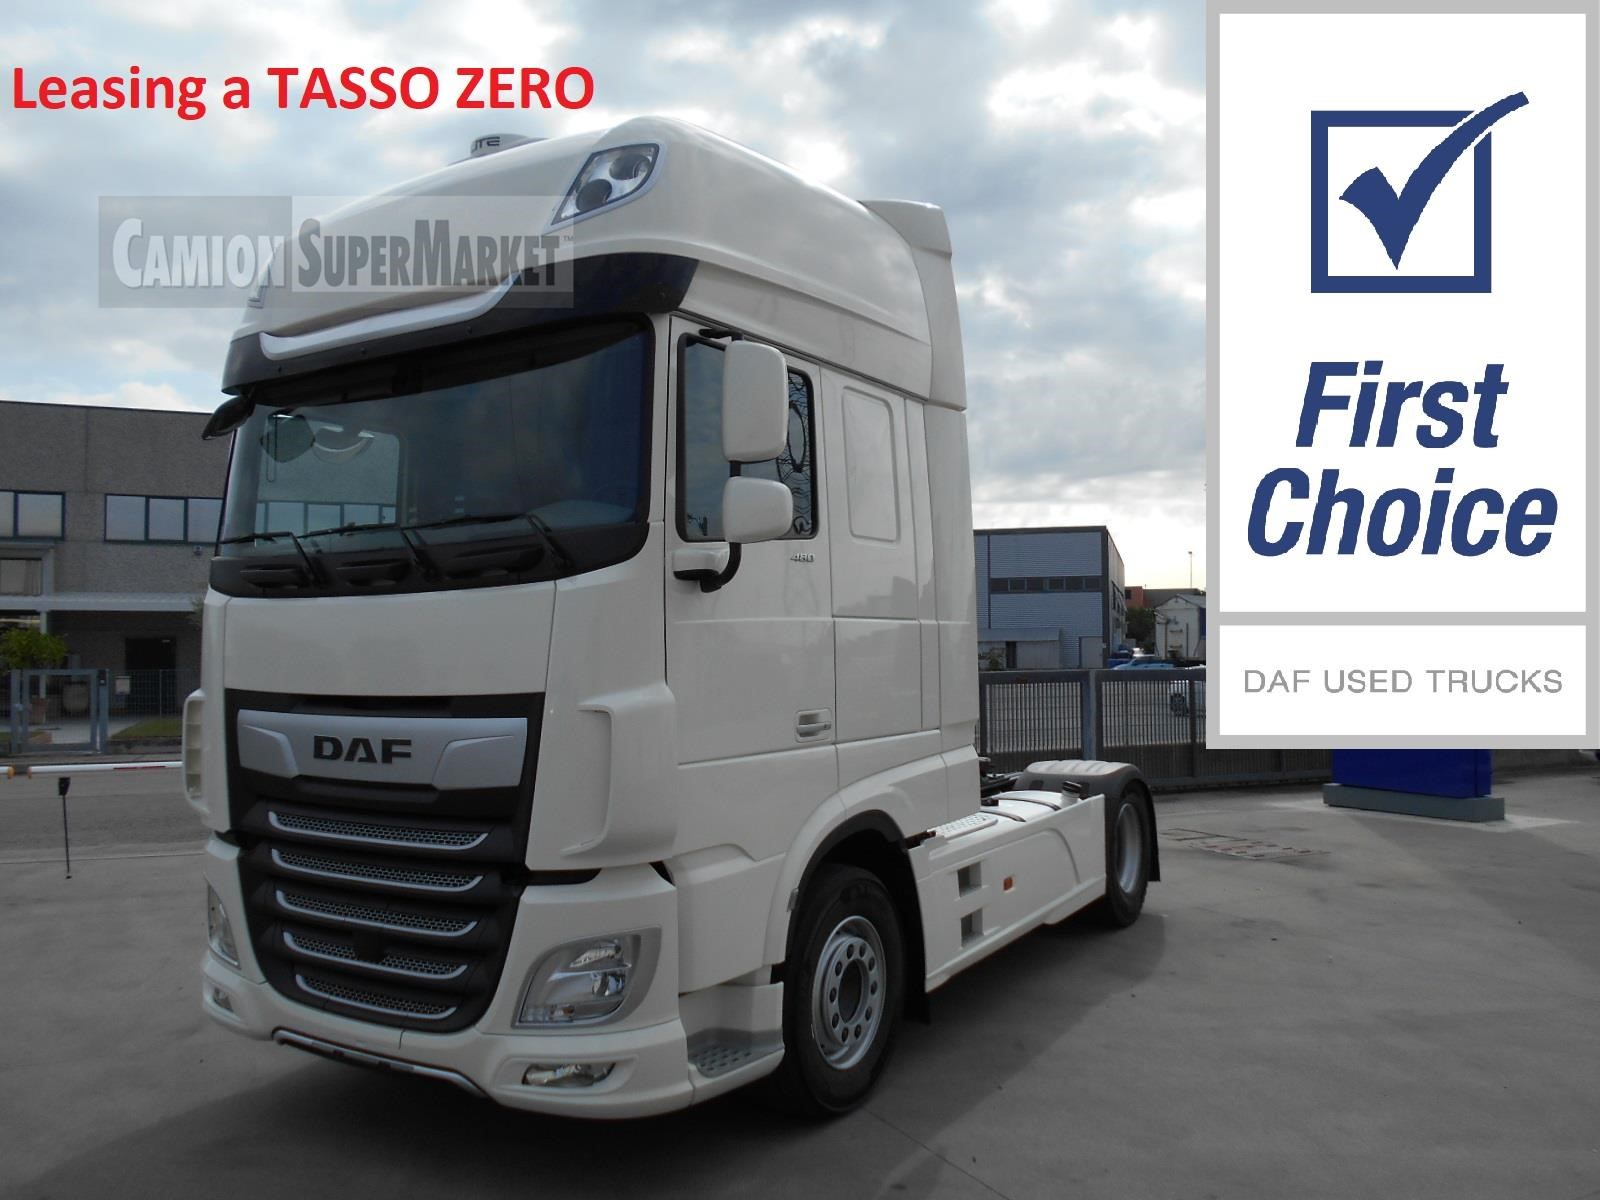 Daf XF480 Second-hand